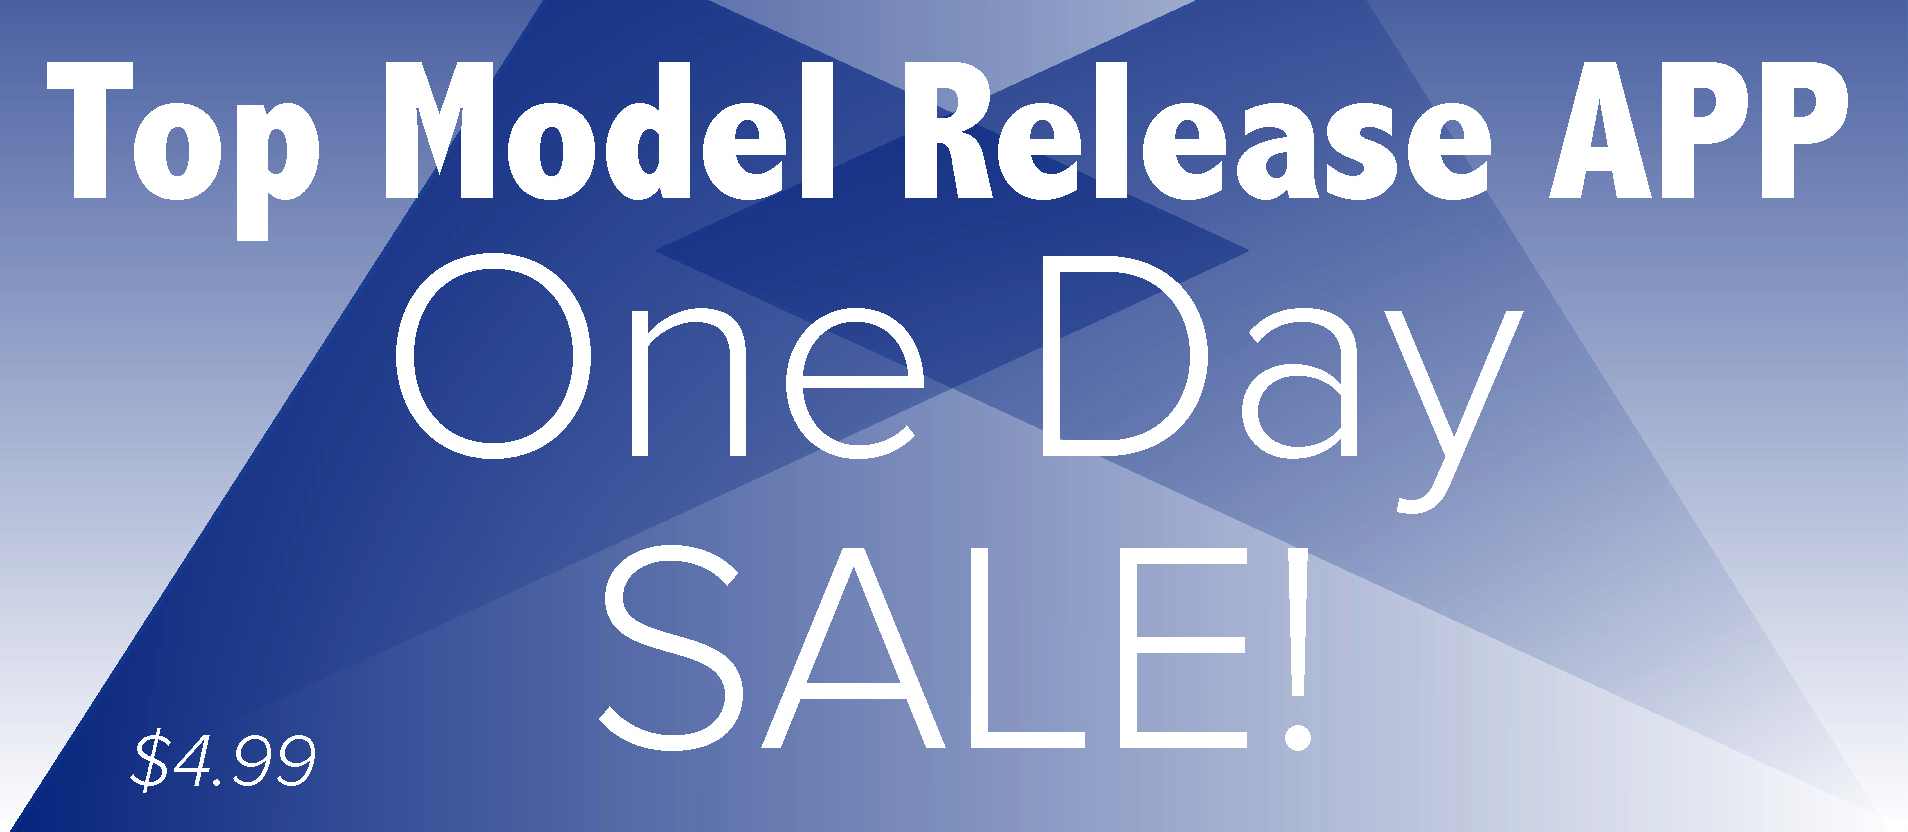 Top Model Release One Day Sale!